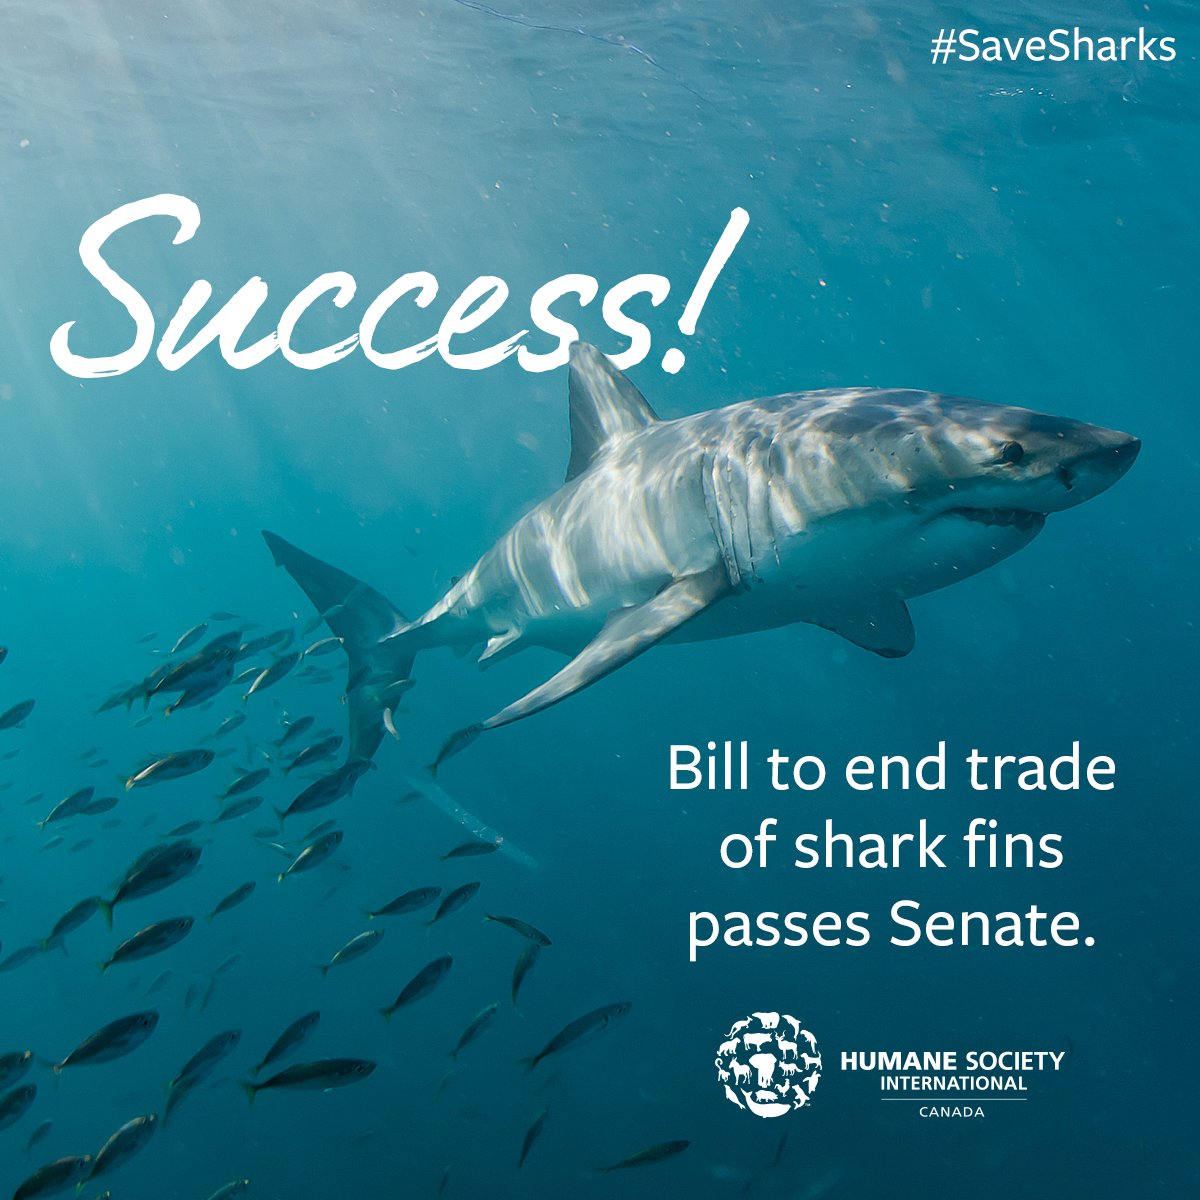 BREAKING: After years of campaigning on shark protection by #HSICanada,  @teamsharkwater & our wildlife allies, #BillS238 to End Trade of  Shark Fins clears the Senate by overwhelming majority and now moves to the House of Commons. We're halfway there! #SaveSharks #FinFree pic.twitter.com/1aAm5unZiI